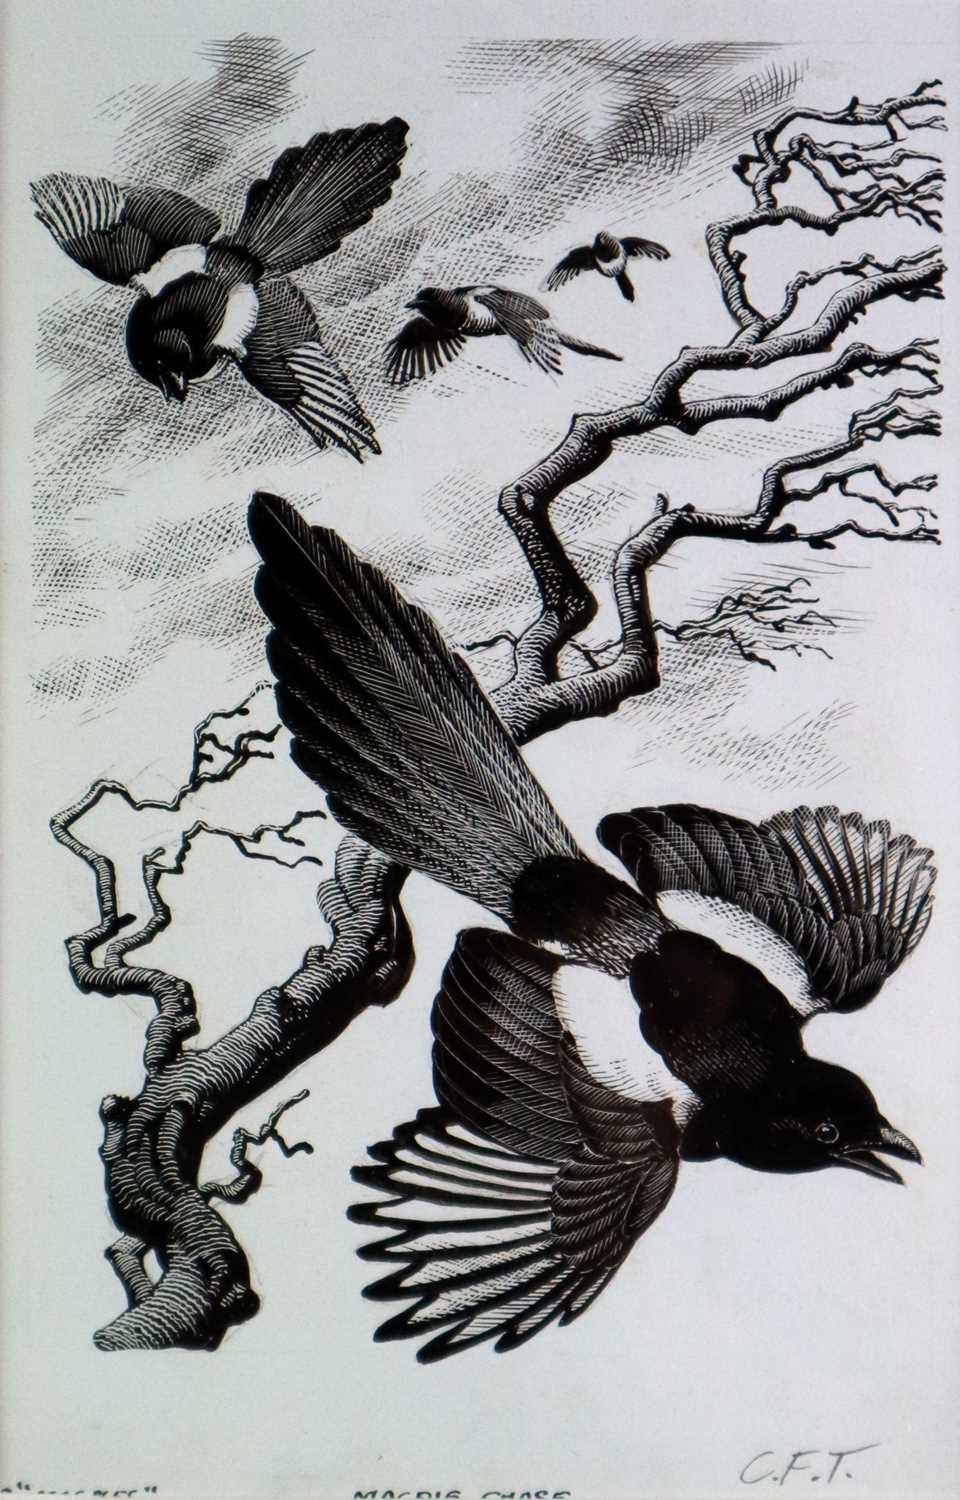 Charles Frederick Tunnicliffe OBE RA (1901-1979) Magpie Chase